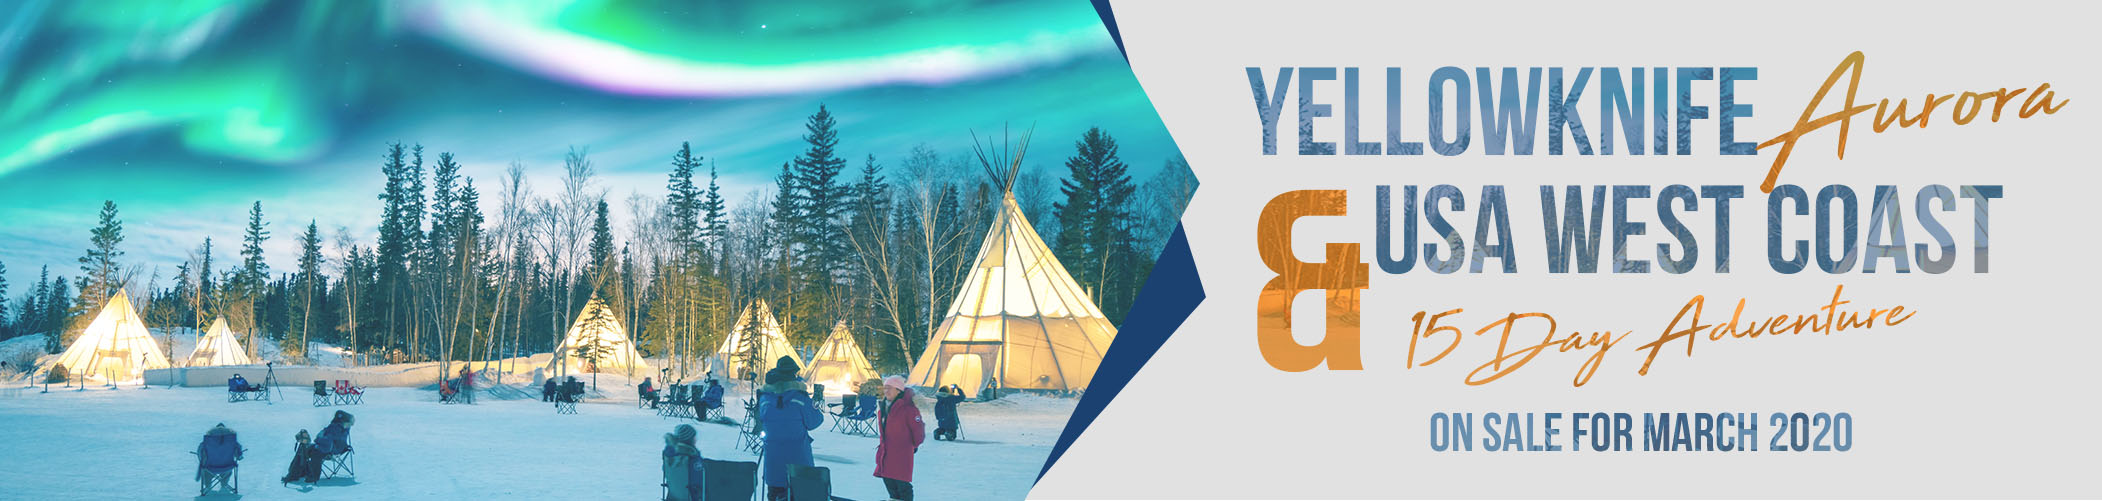 15 day Yellowknife Aurora with USA West Coast Canyons Tour